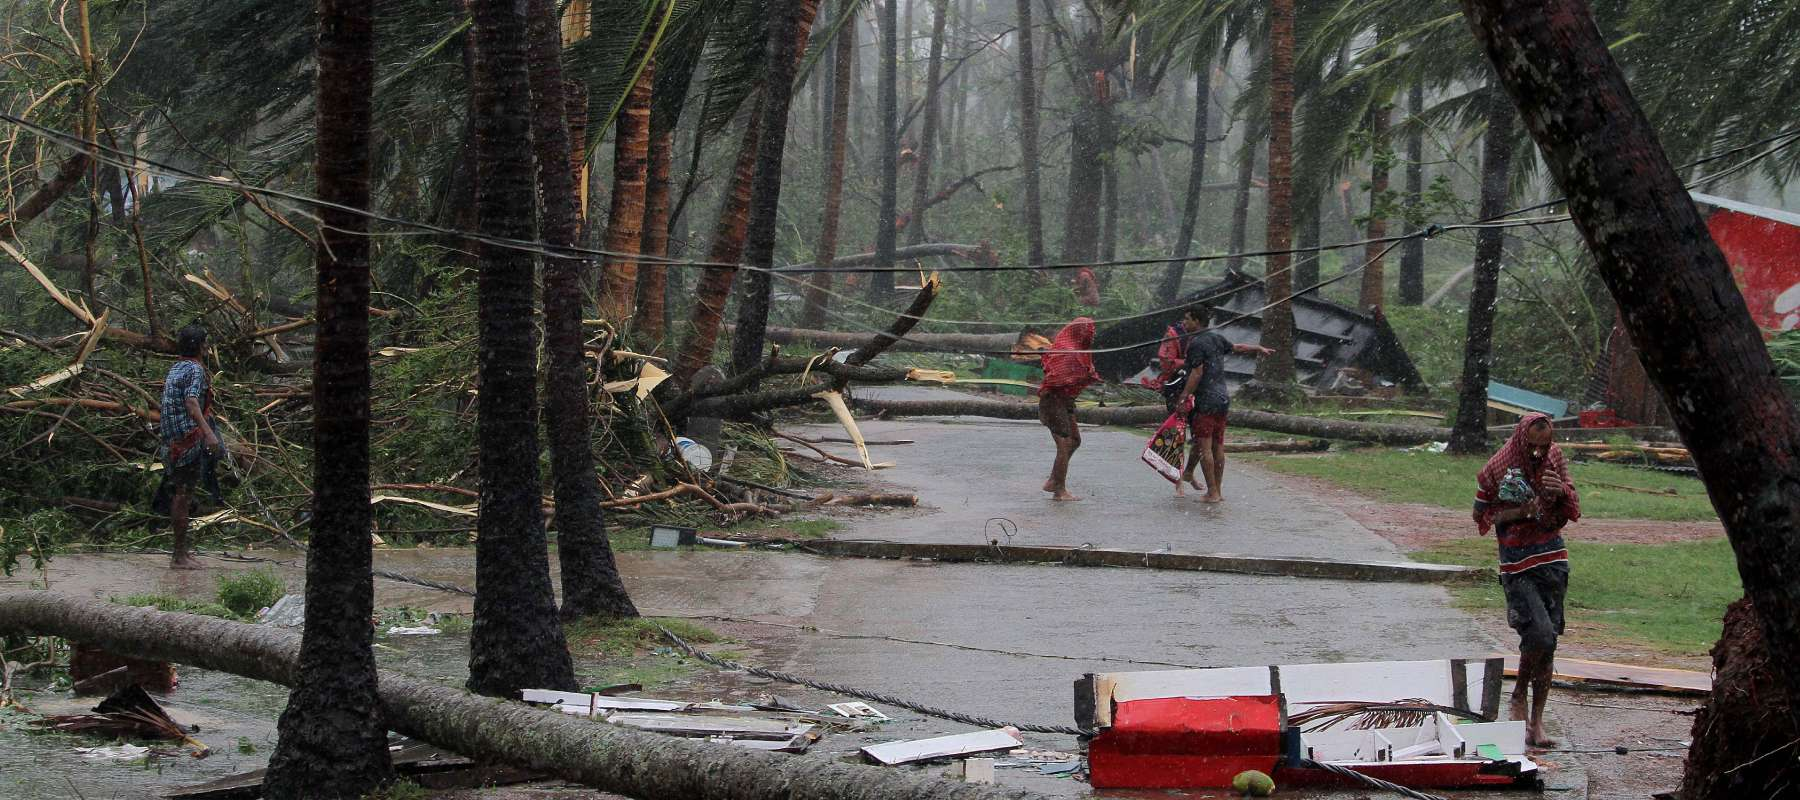 Cyclone Fani has caused devastation in India and Bangladesh